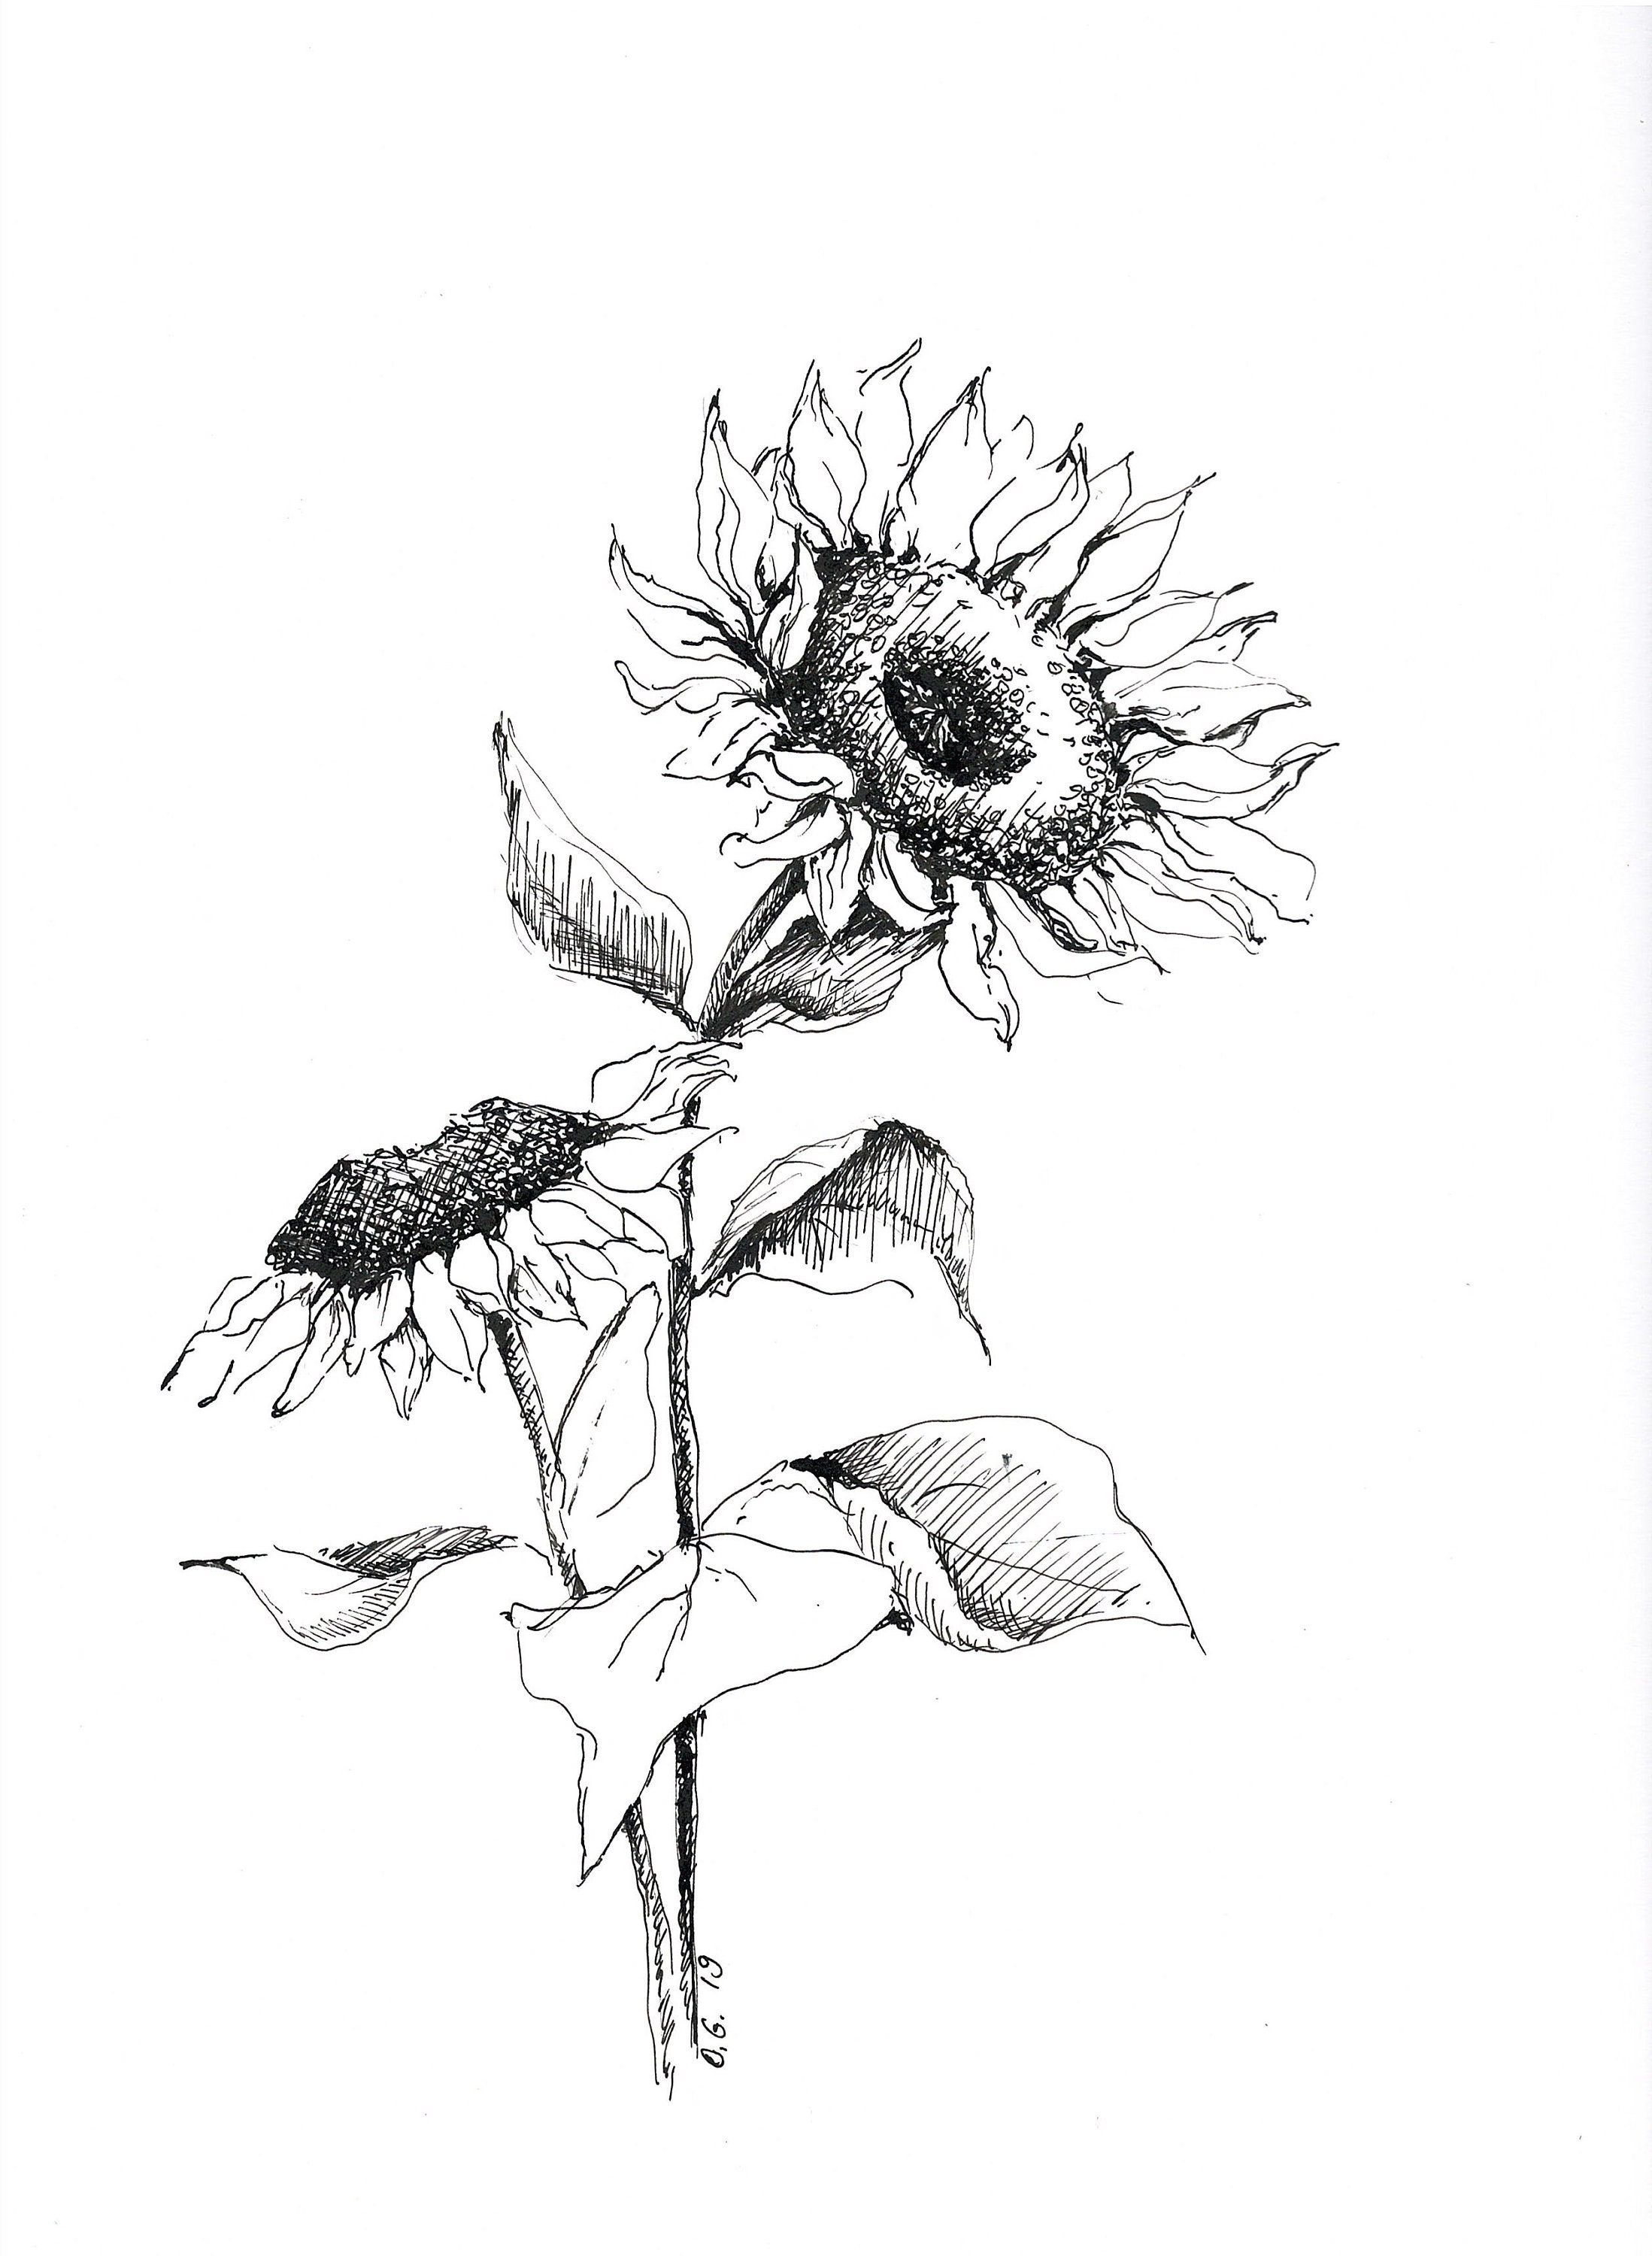 Sunflower art black and white sketches original pen and ink drawings flower sketch art floral pictures botanical illustration decor